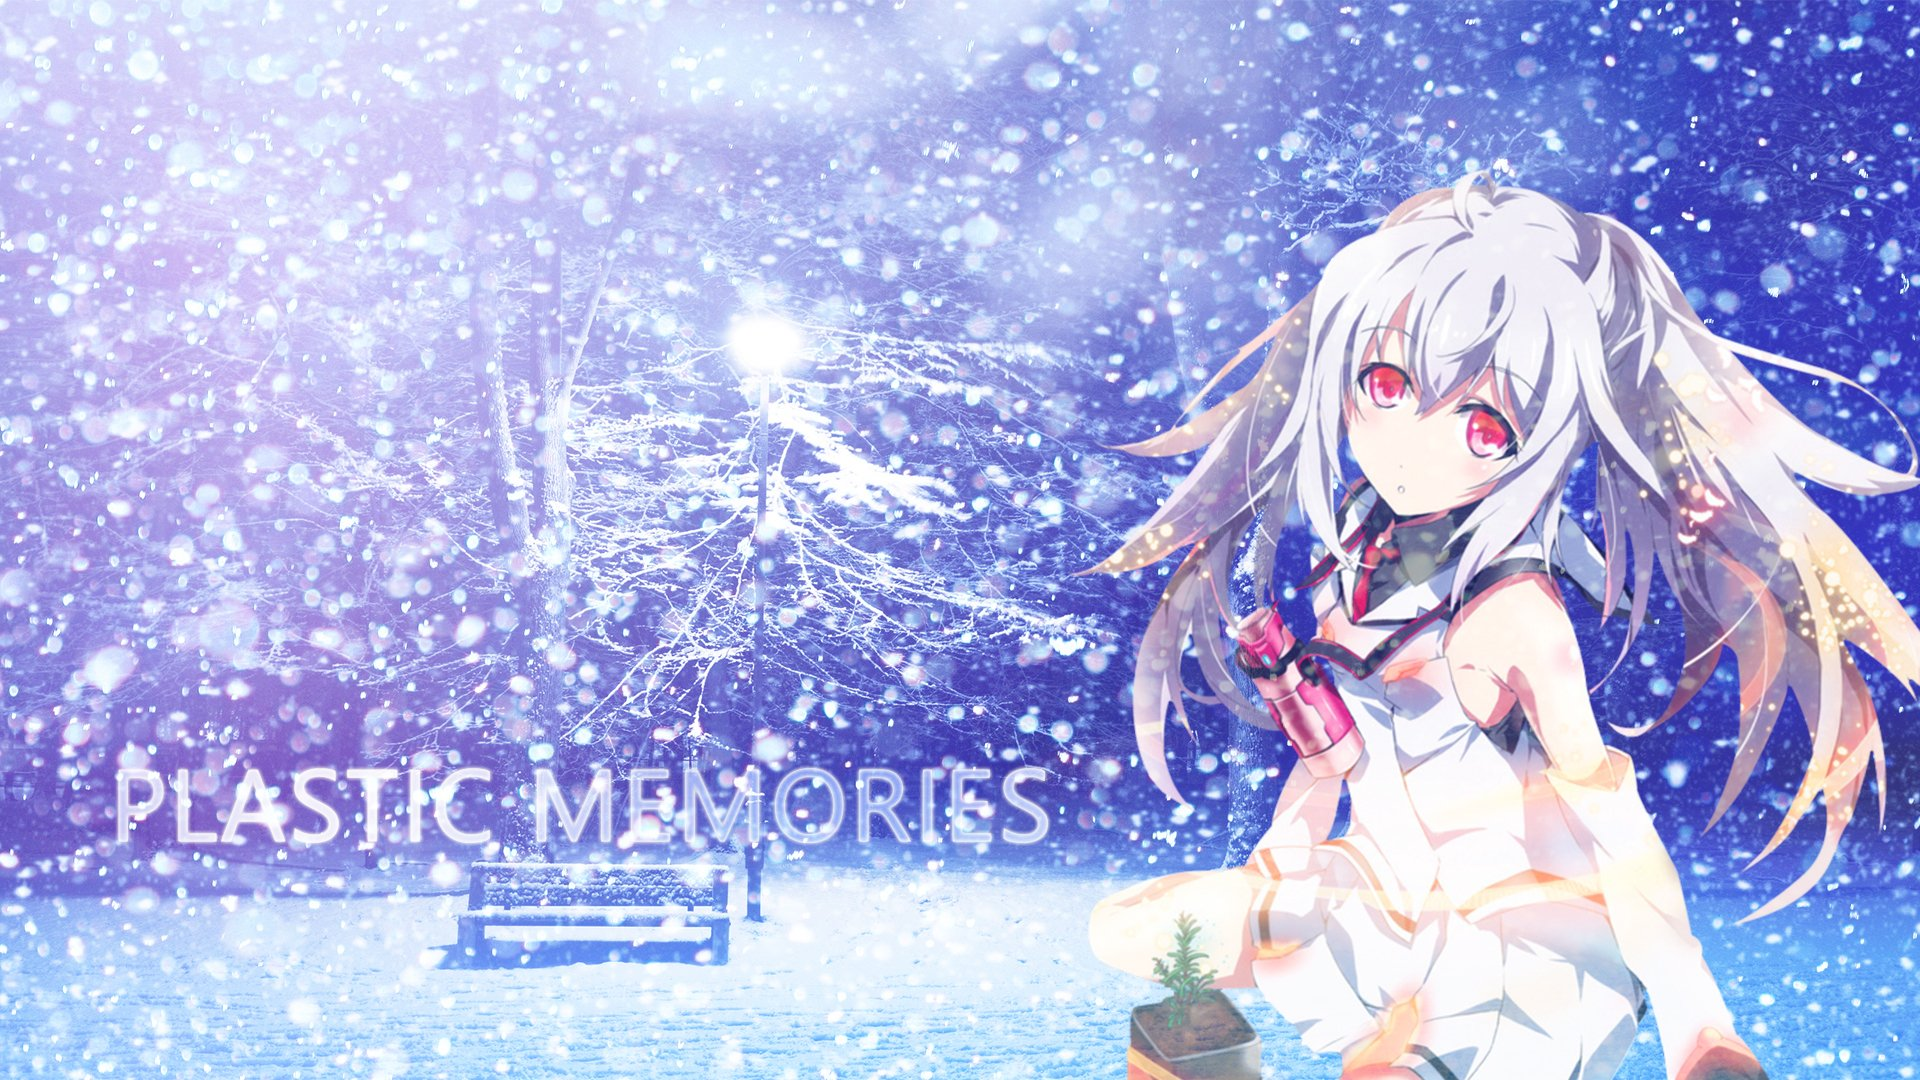 Plastic memories hd wallpaper background image - Anime backgrounds com ...